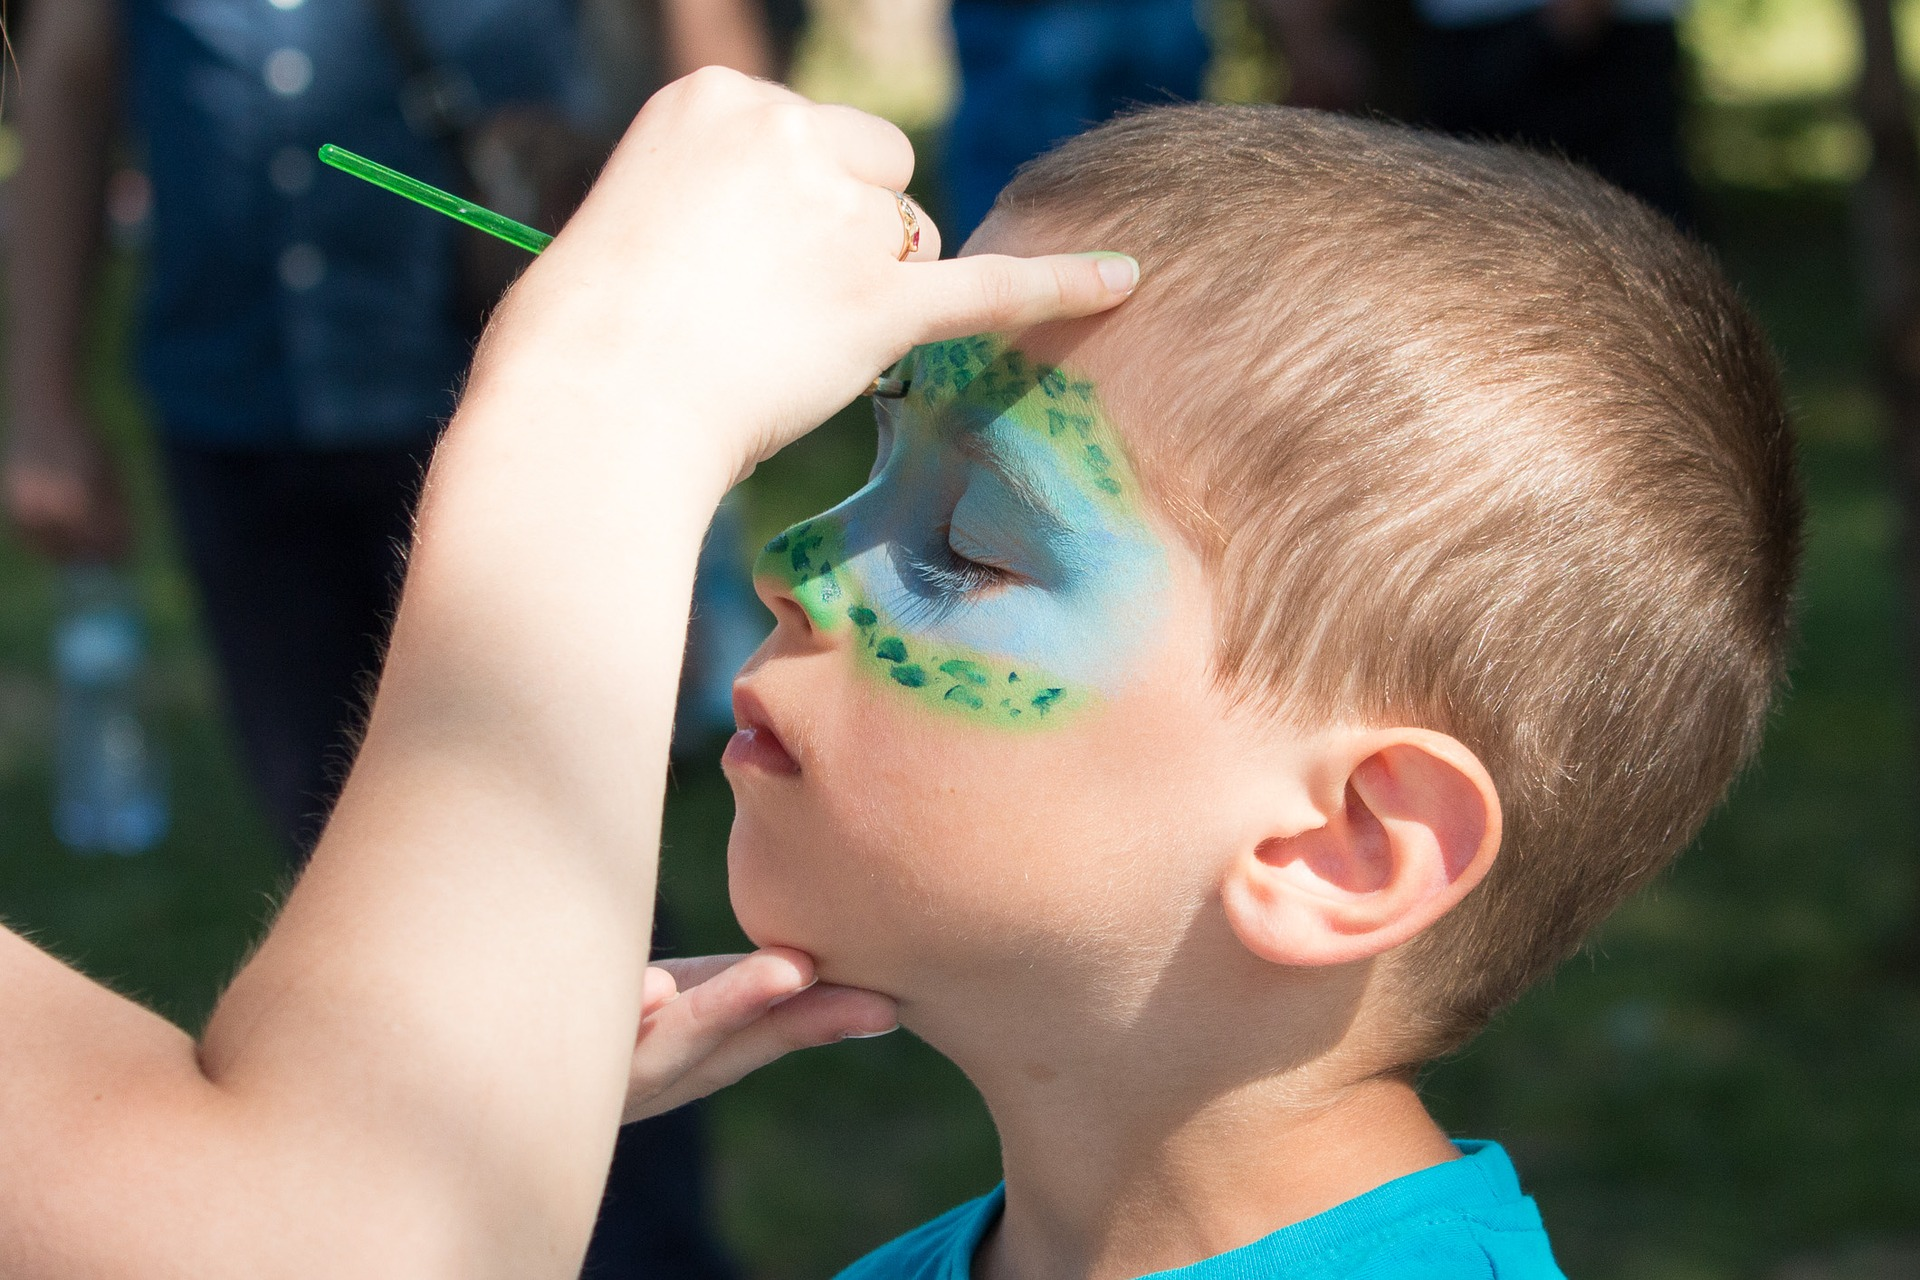 face-painting-2436885_1920 (1).jpg